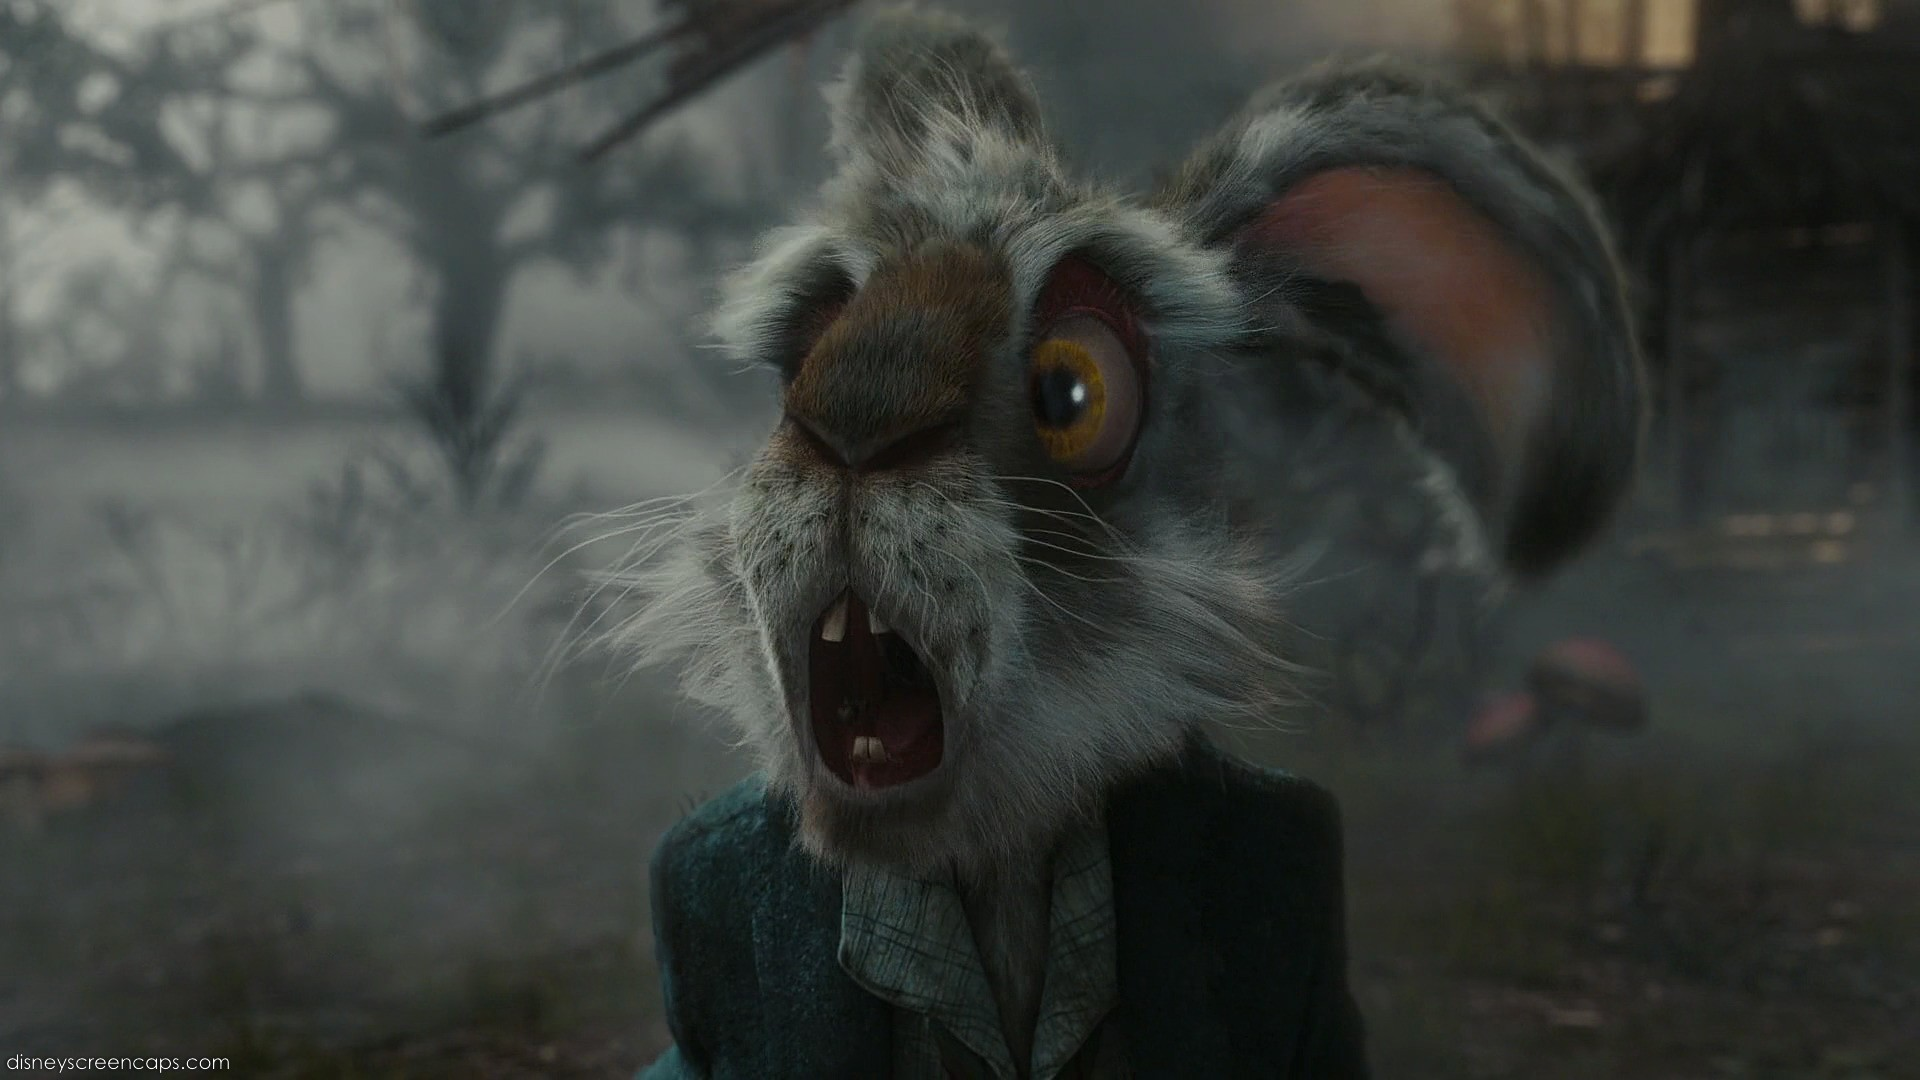 mad march hare - March Hare Photo (33179556) - Fanpop